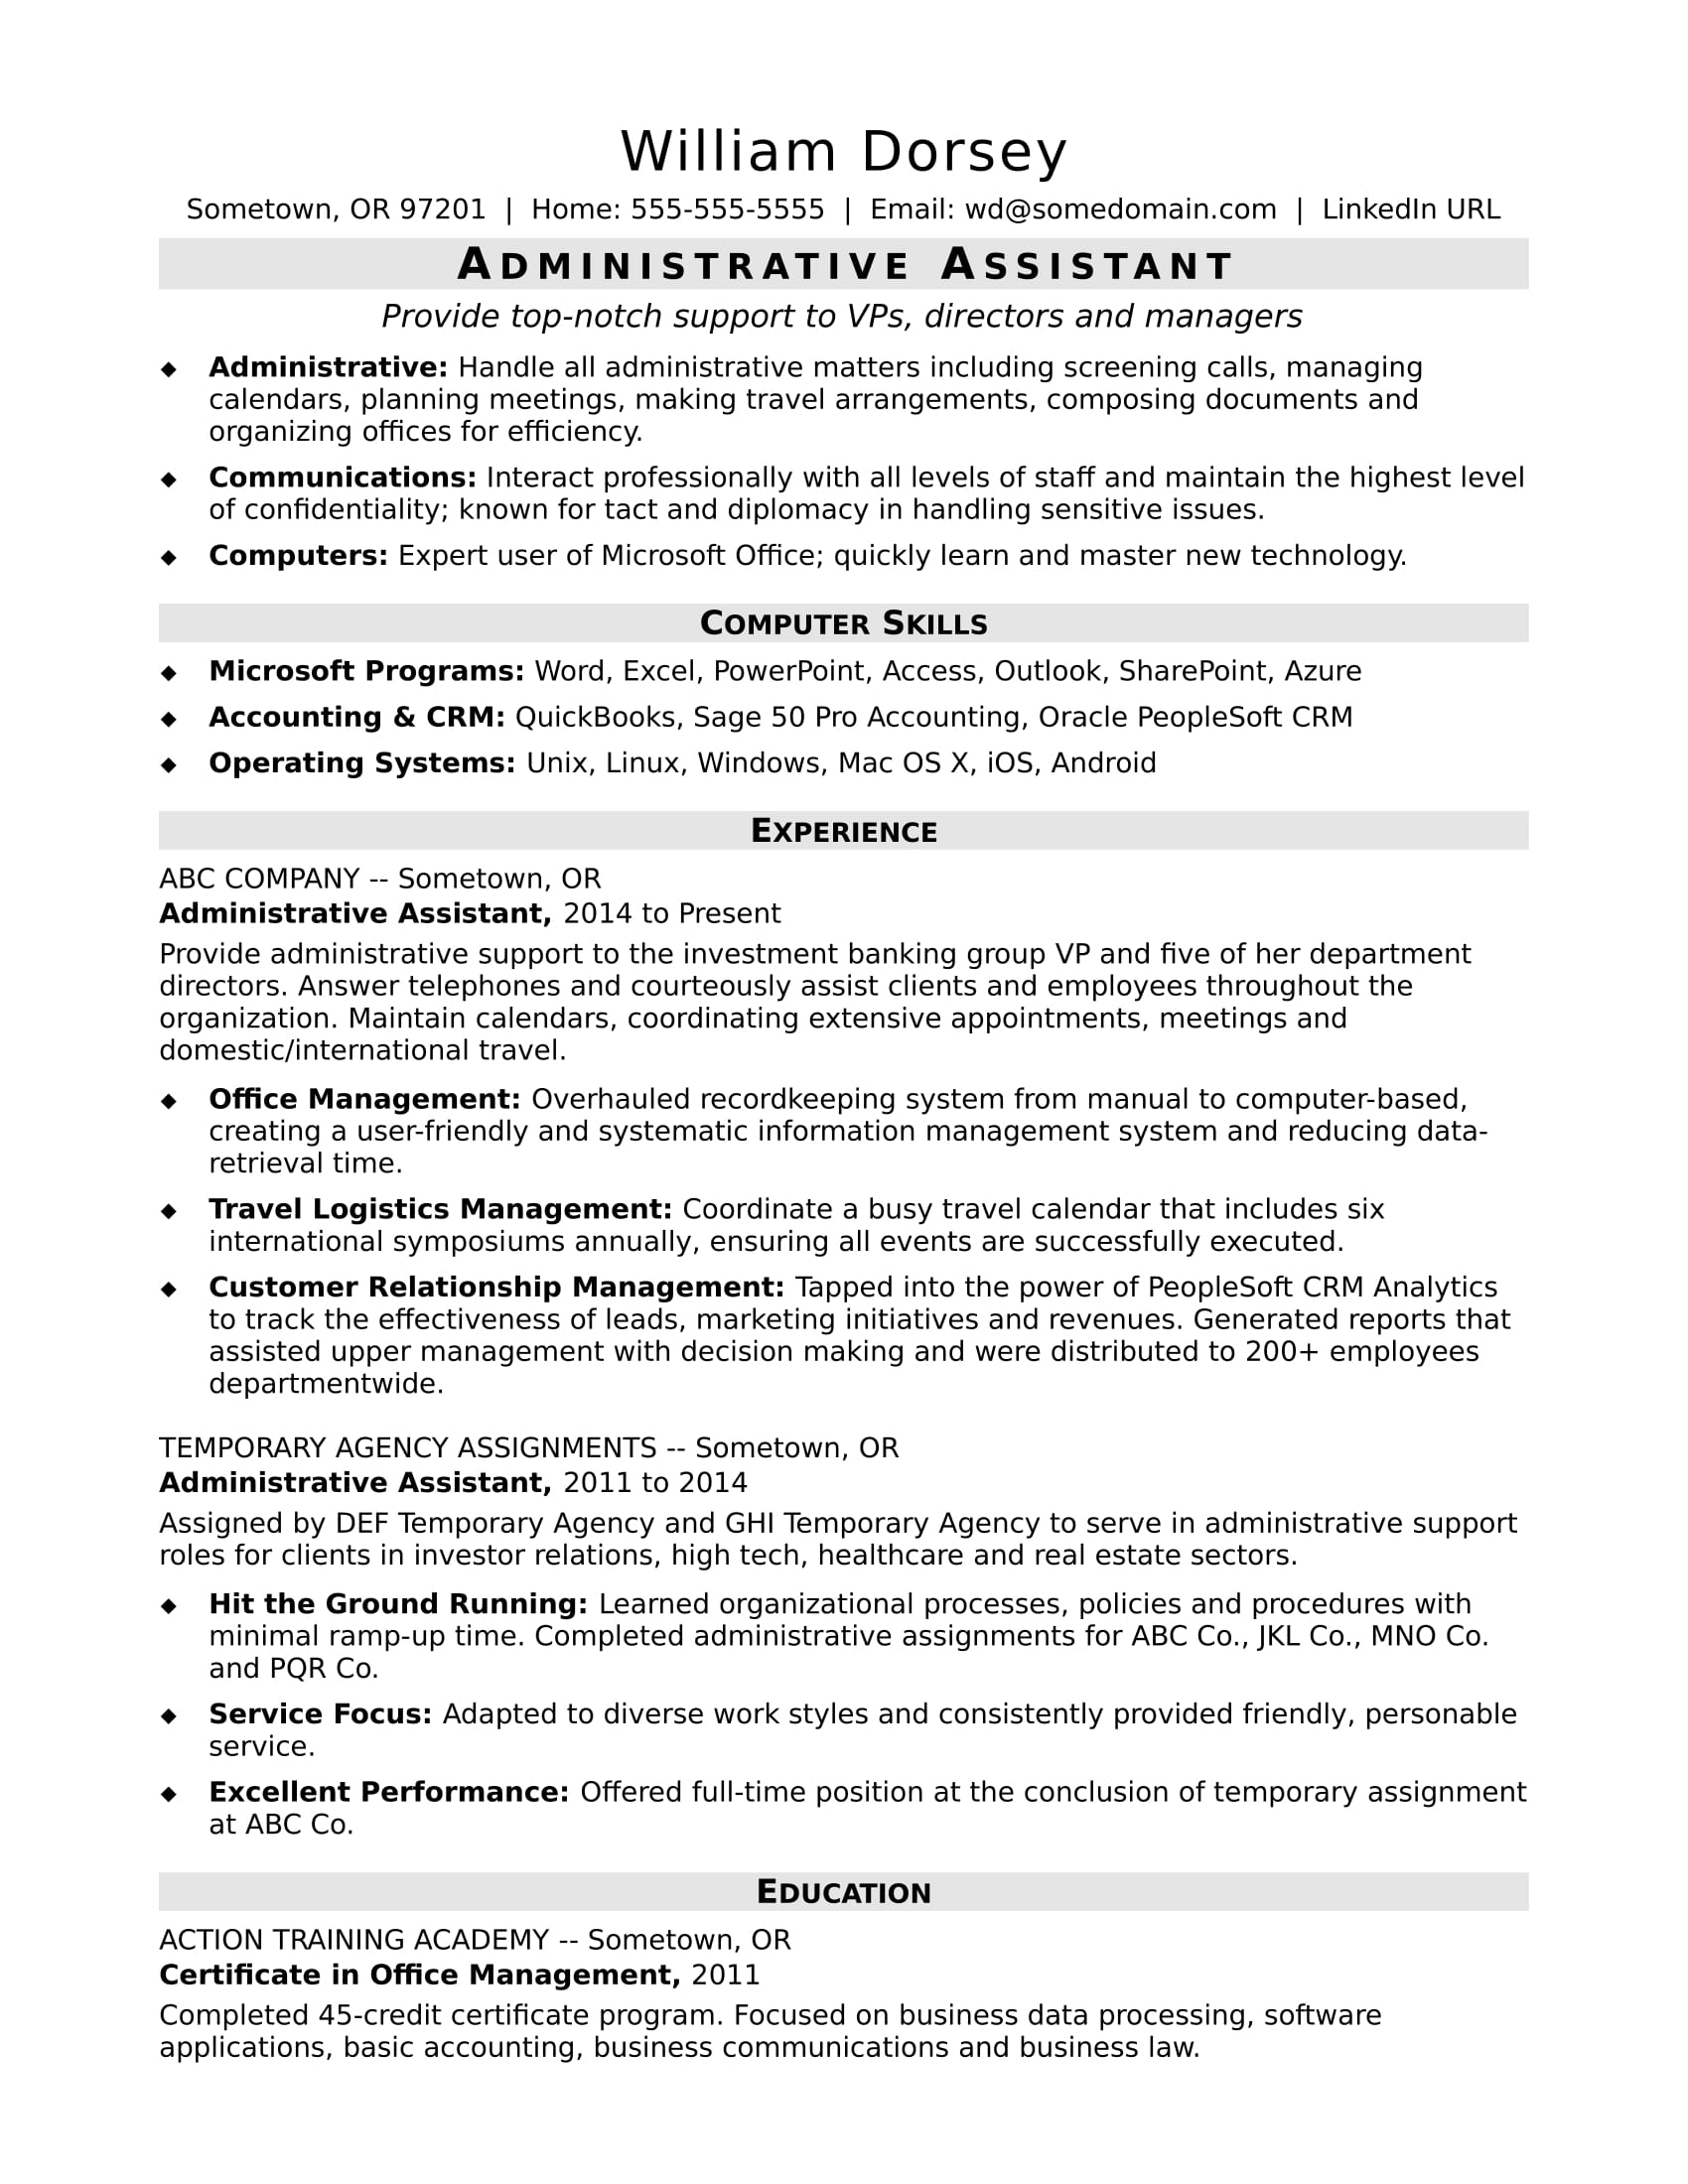 Sample Resume For A Midlevel Administrative Assistant  Administrative Assistant Resume Skills